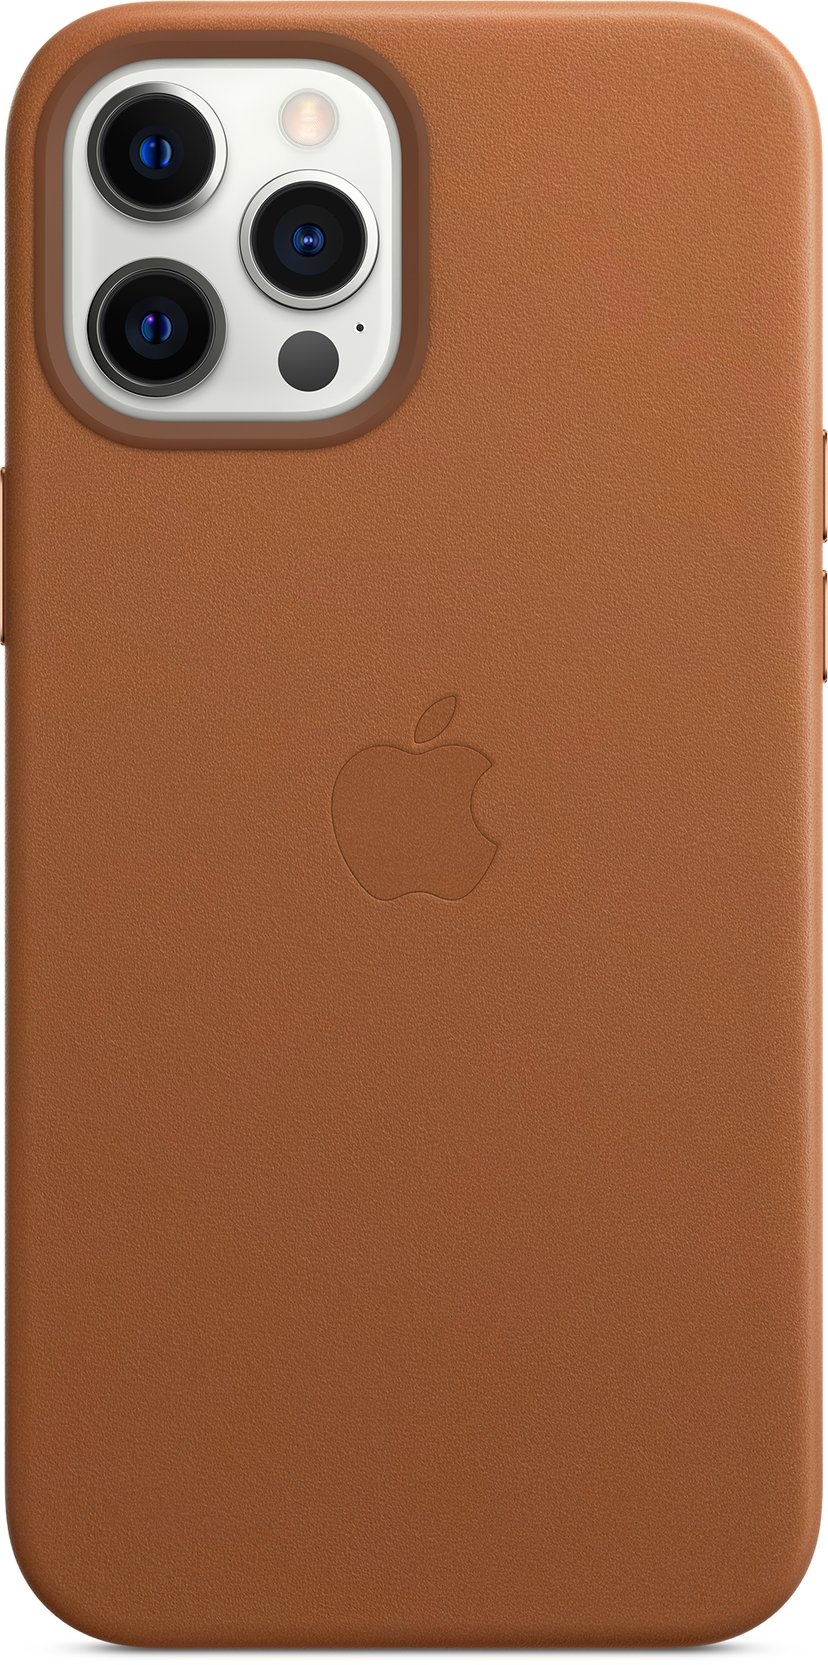 Apple Leather Case with MagSafe iPhone 12 Pro Max Salbrun